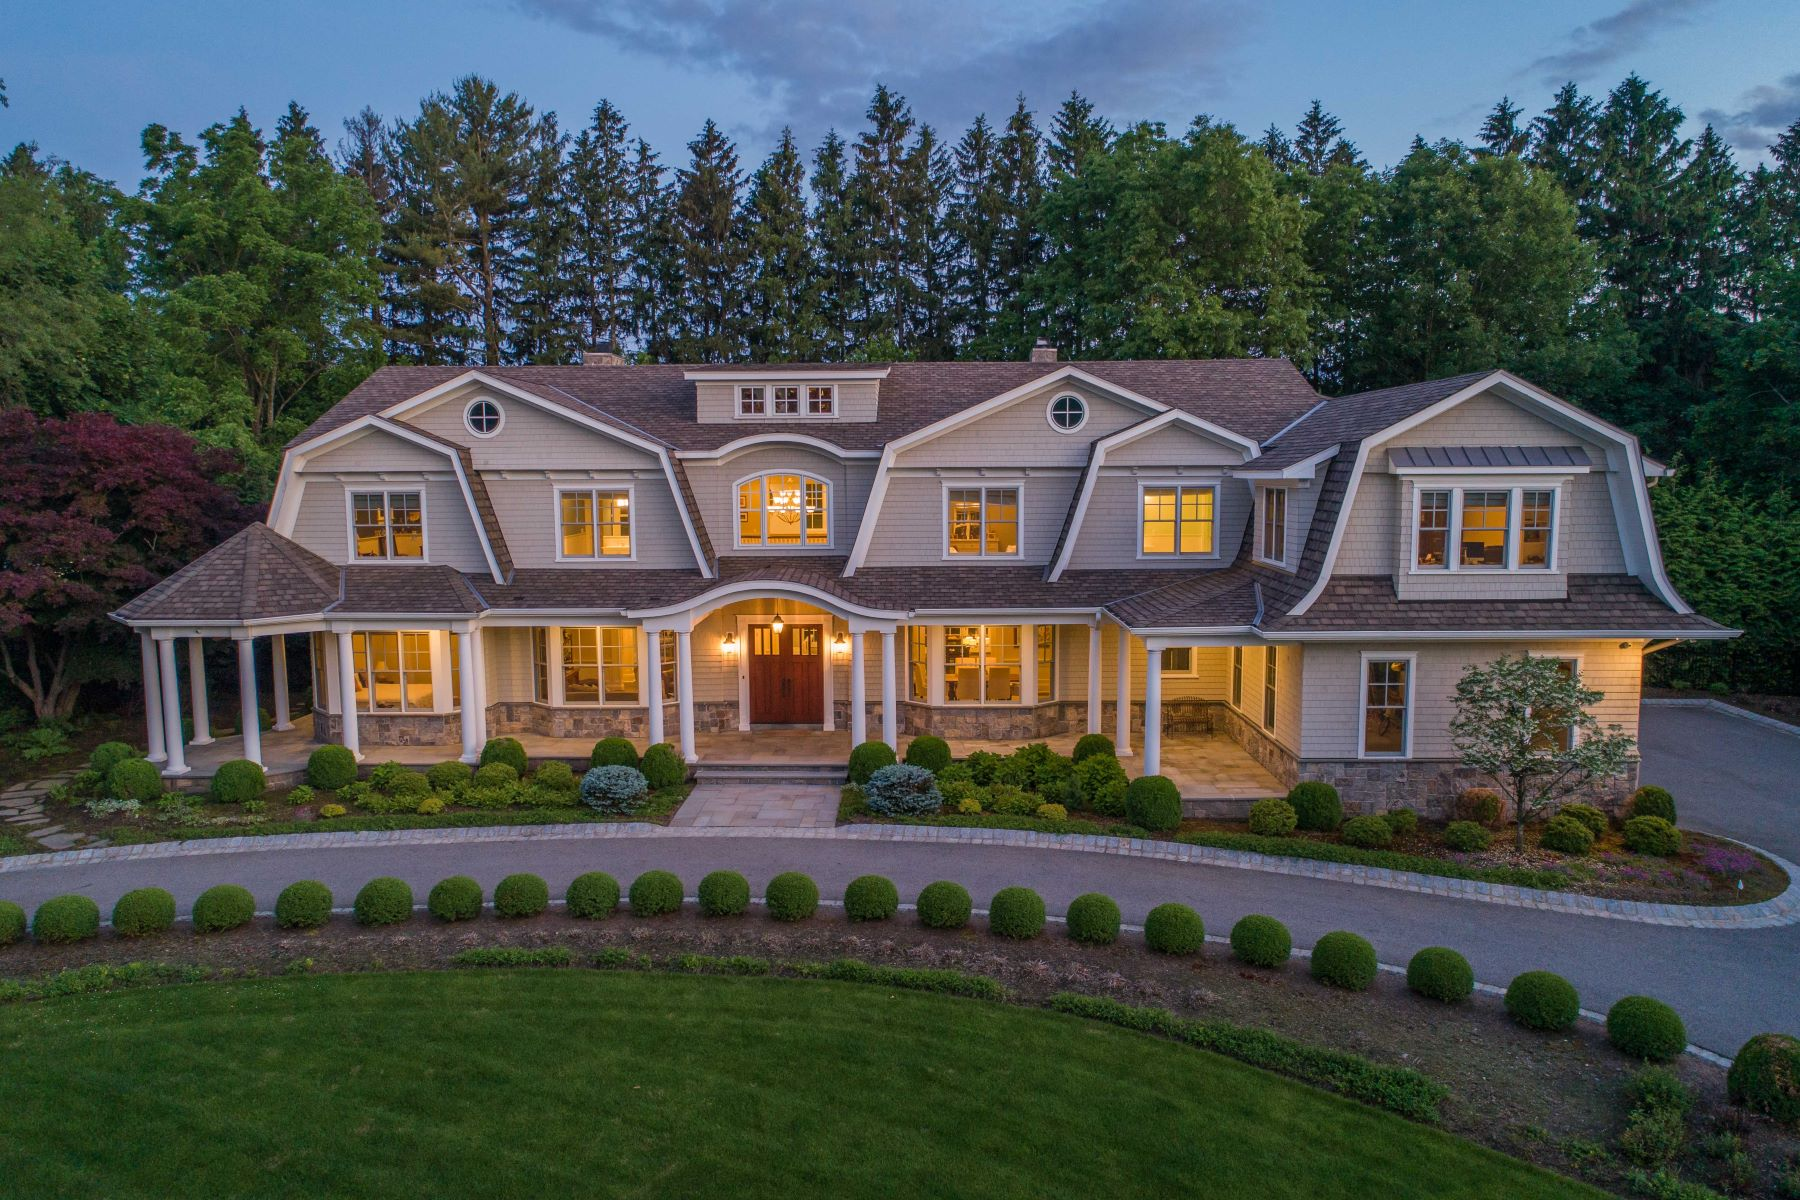 Single Family Homes for Sale at STUNNING CUSTOM HOME 8 Jan River Dr Upper Saddle River, New Jersey 07458 United States